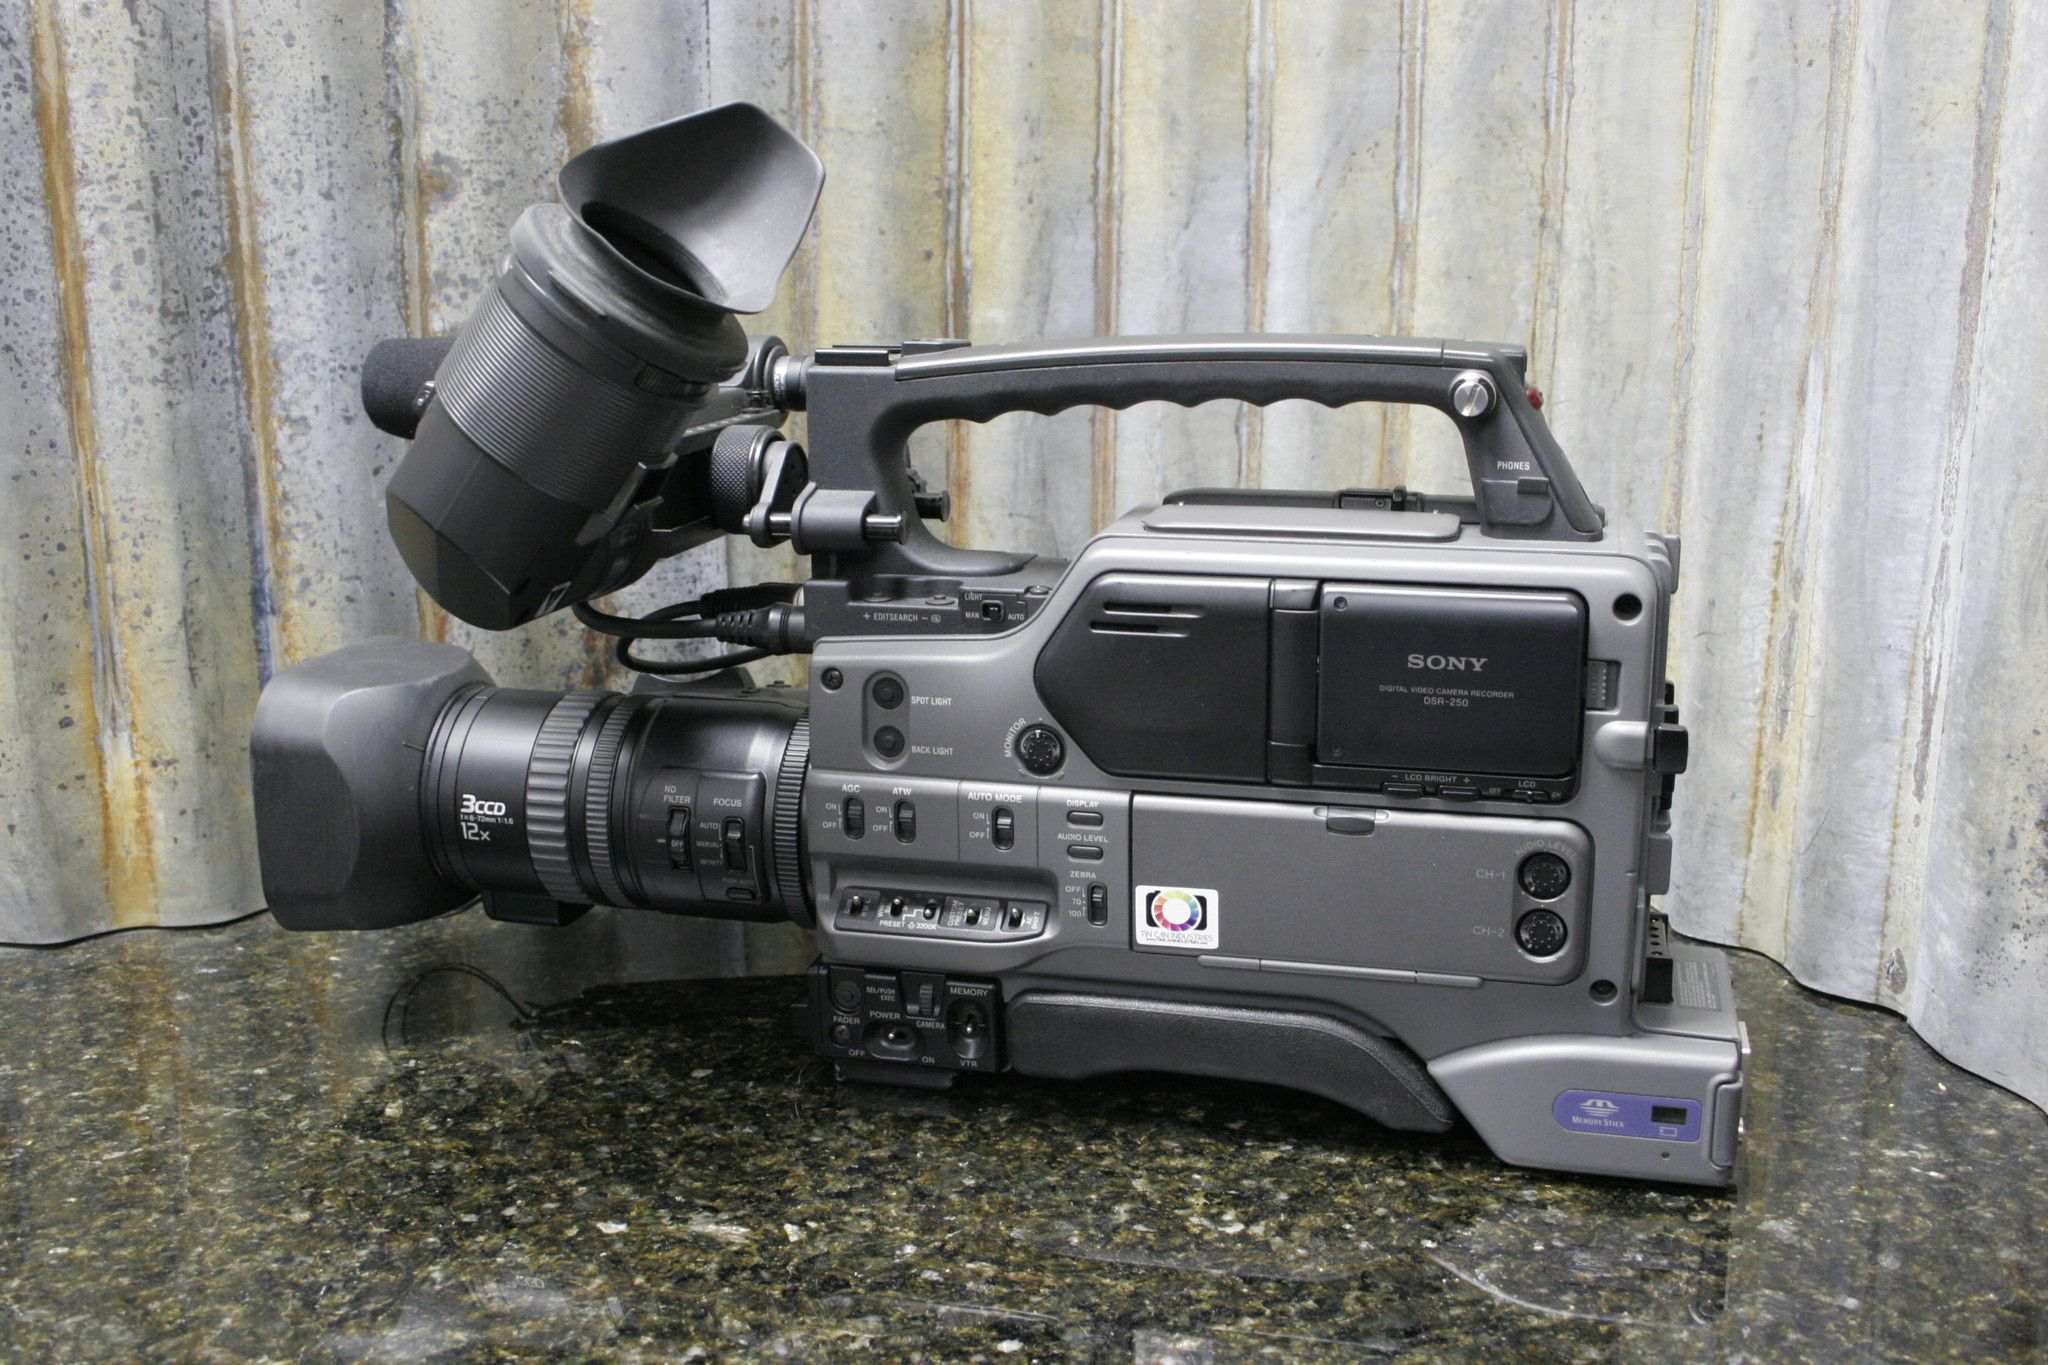 We know you were looking for one of these. http://tincanindustries.com/products/sony-dsr-250-professional-grade-broadcast-camera-low-hrs-nice-condition-free-s-h If it is already sold, keep searching, there is plenty more to find.